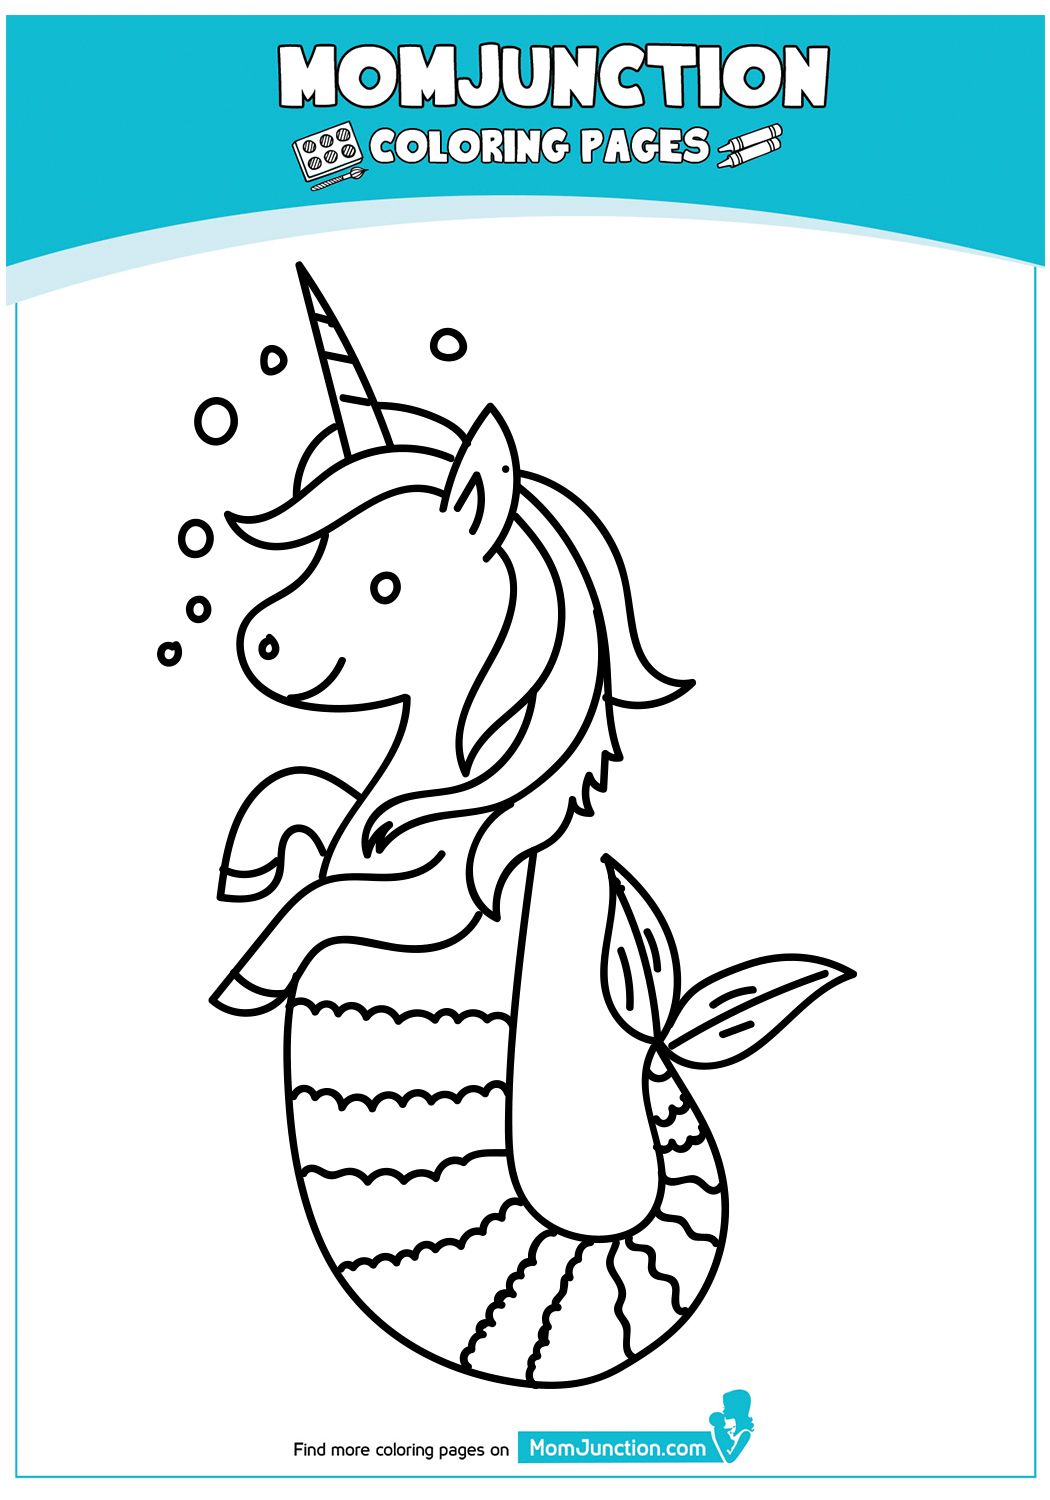 Cute Unicorn Mermaid 18 Unicorn Coloring Pages Mermaid Coloring Pages Coloring Pages